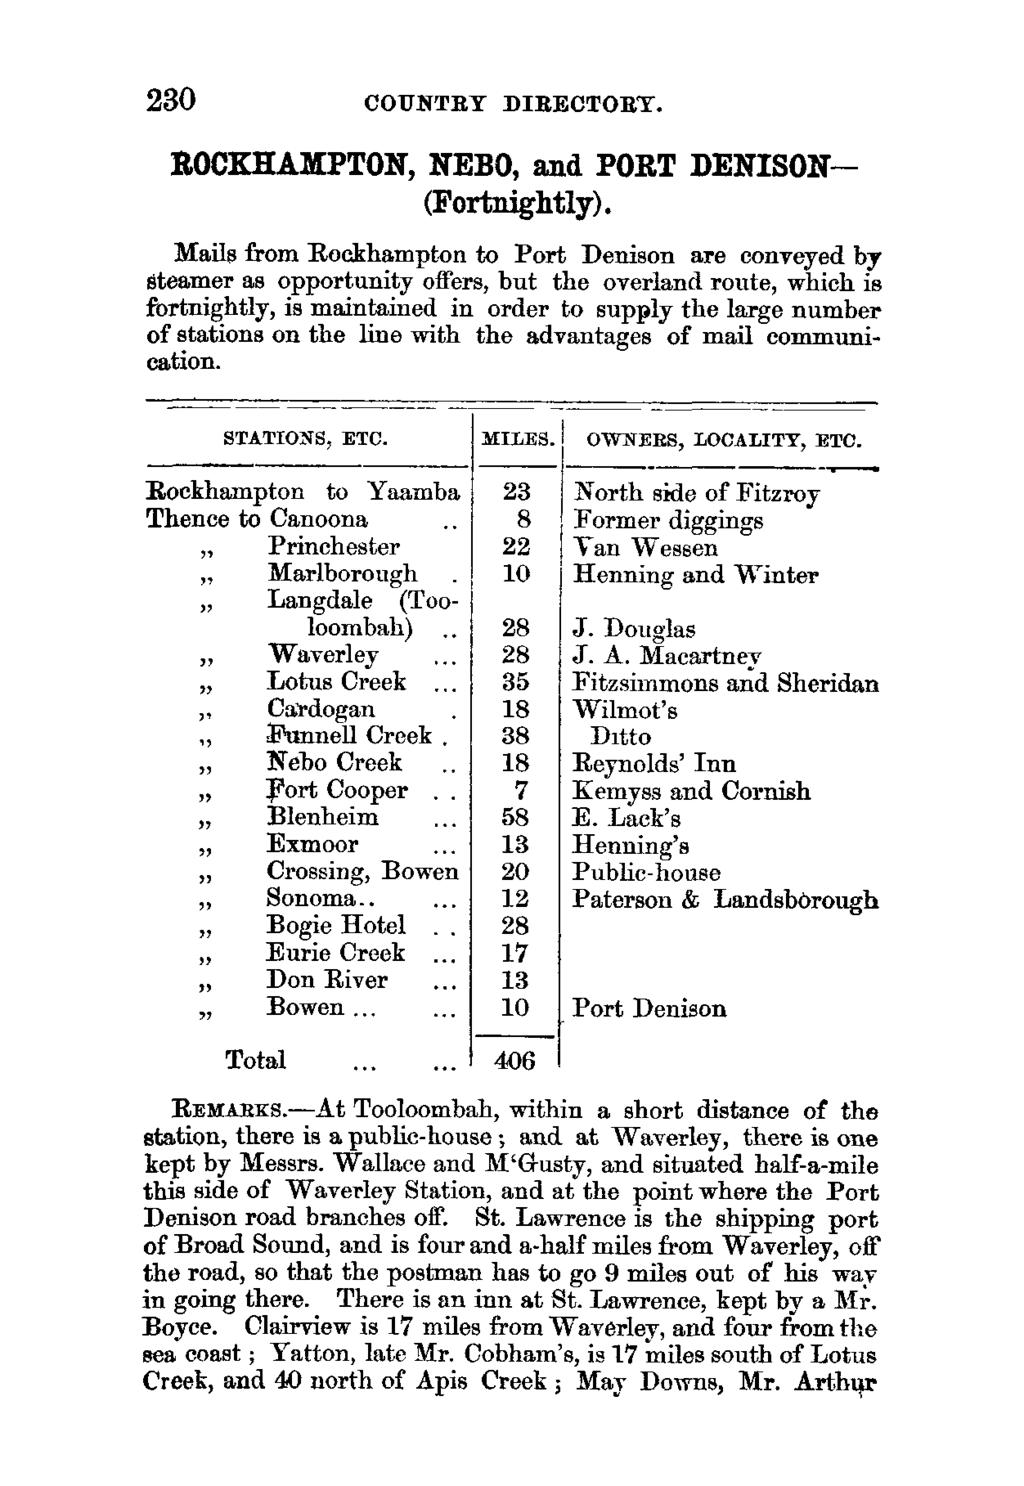 230 COUNTRY DIRECTORY. ROCHHANIPTON, NEBO, and PORT DENISON- (Fortnightly). STATIONS, ETC. MILES. OWNERS, LOCALITY, ETC.